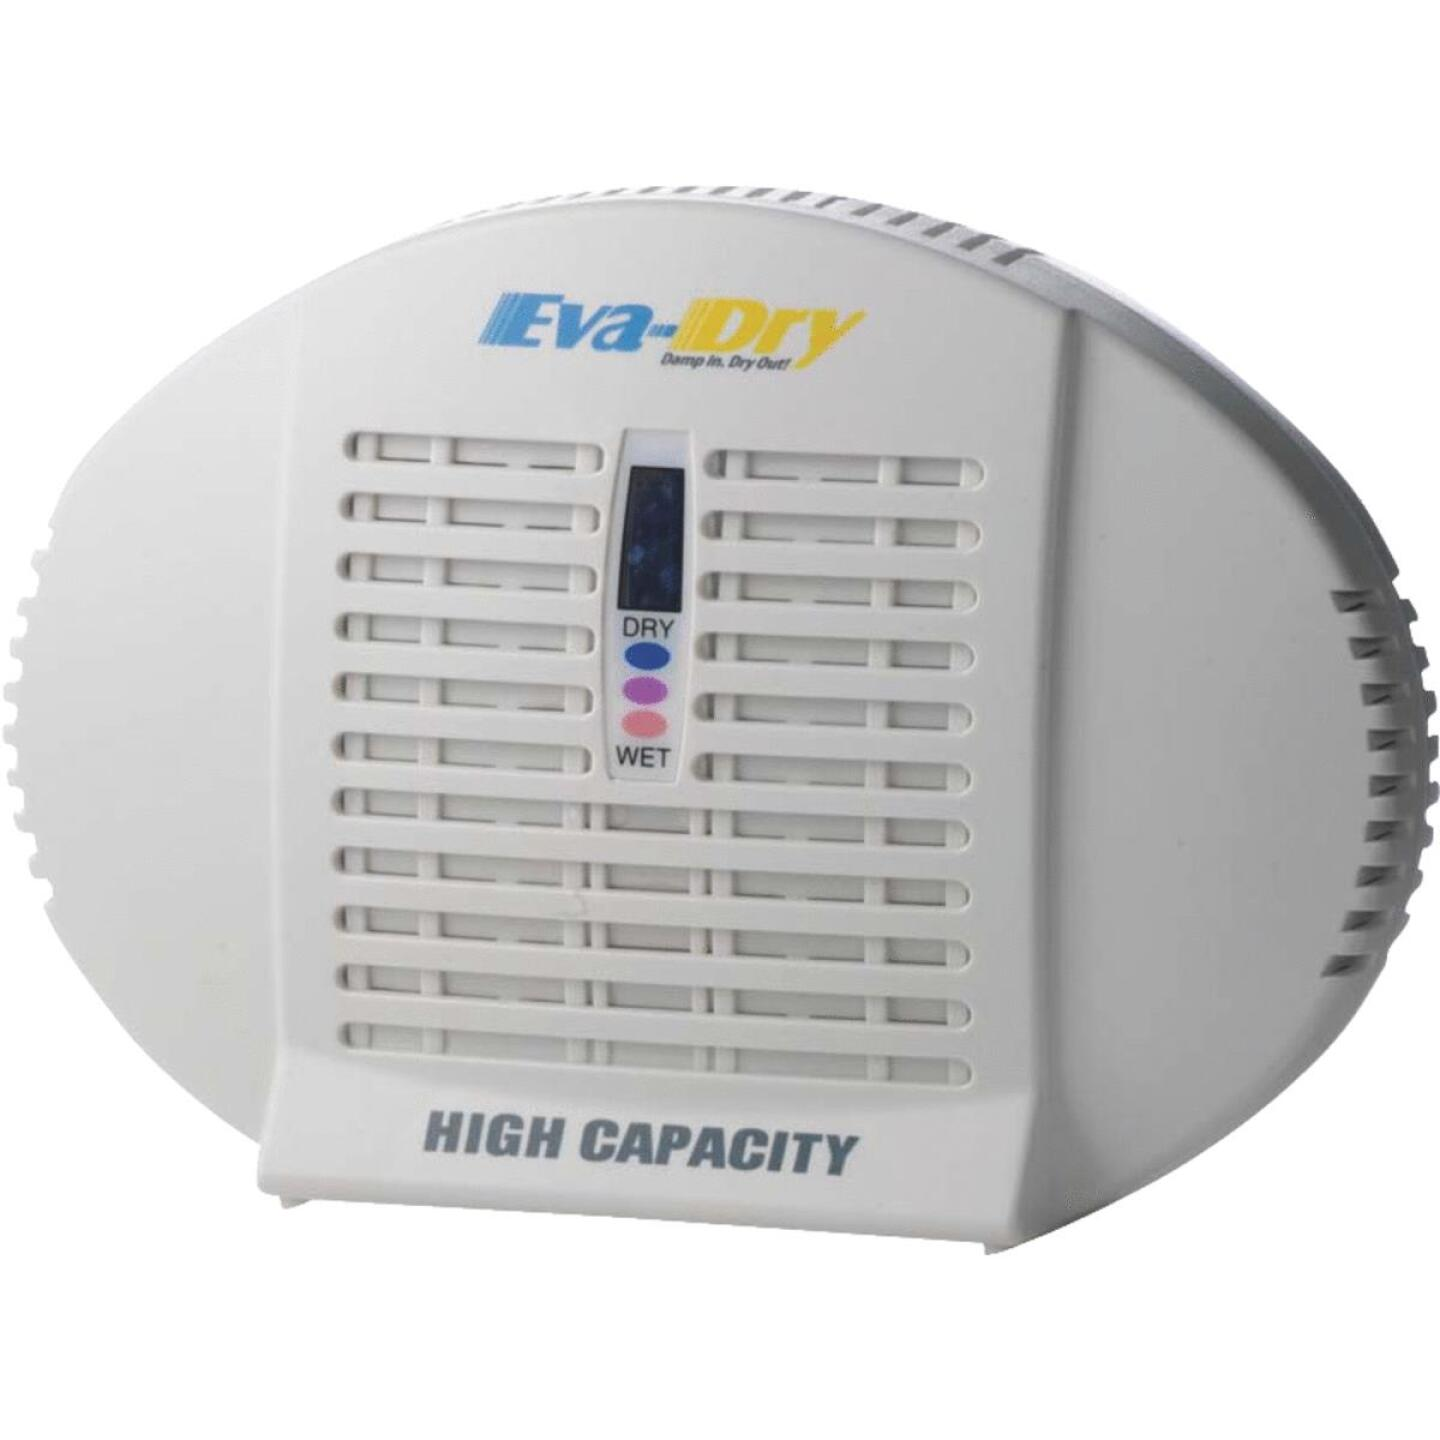 Eva-Dry 500 Cu. Ft. 30 to 60 Days Duration Renewable Mini Dehumidifier Image 1